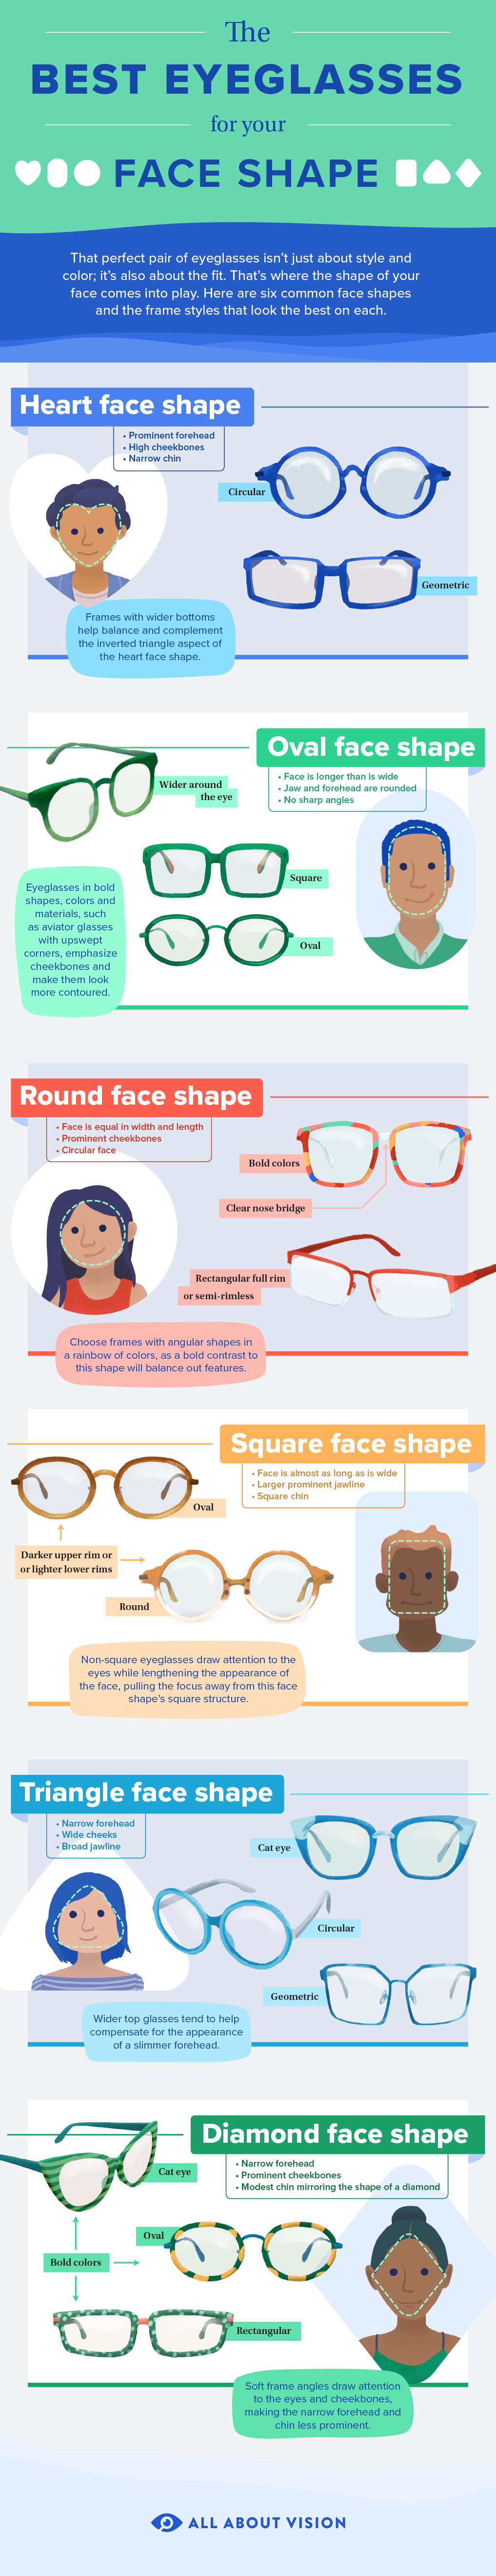 https://cdn.allaboutvision.com/images/infographic-best-glasses-for-face-shape.png